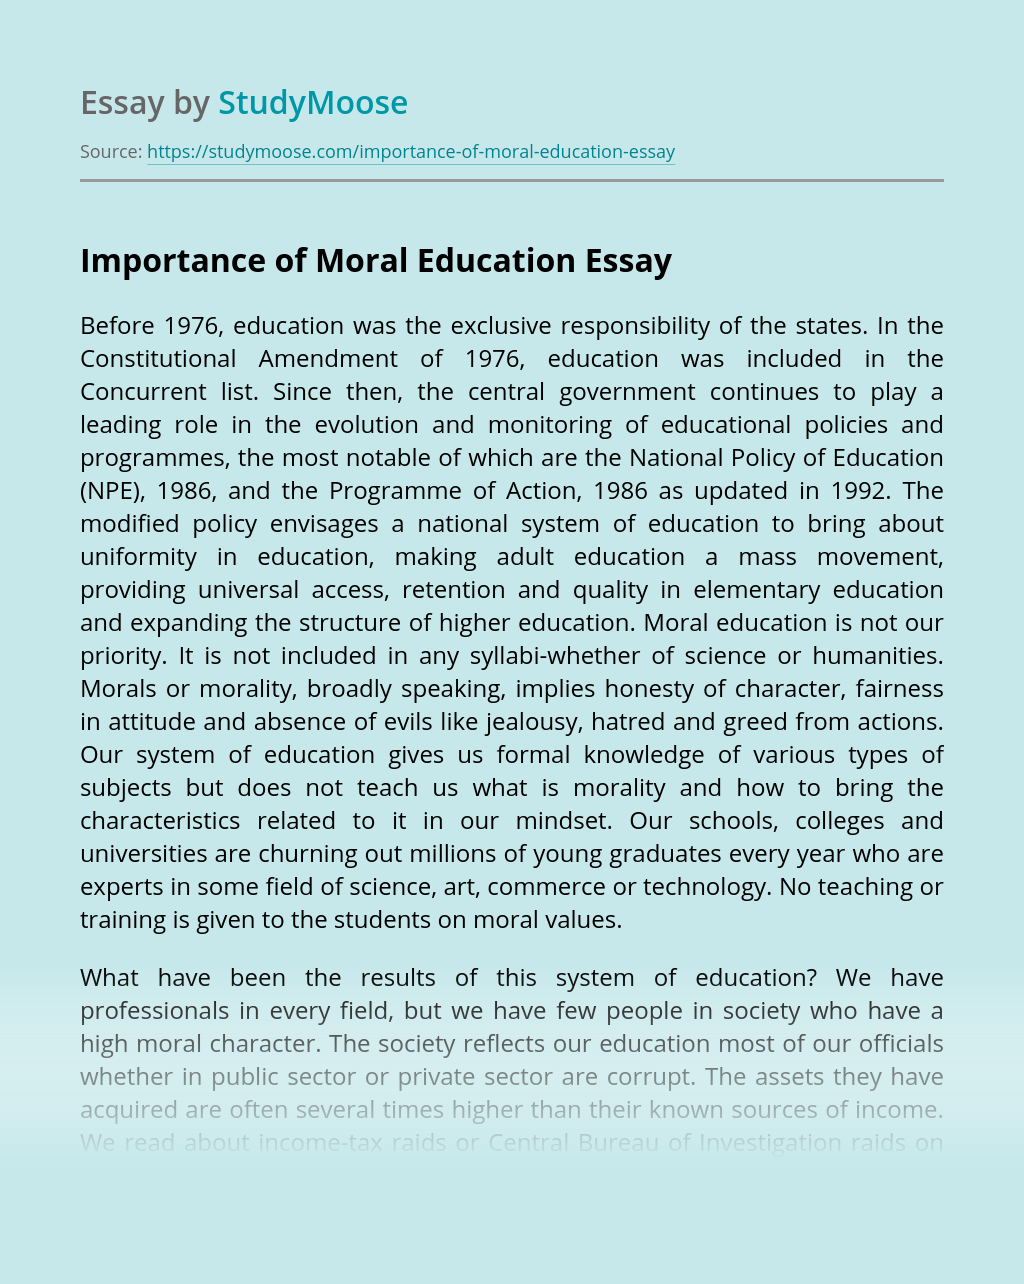 Importance of Moral Education